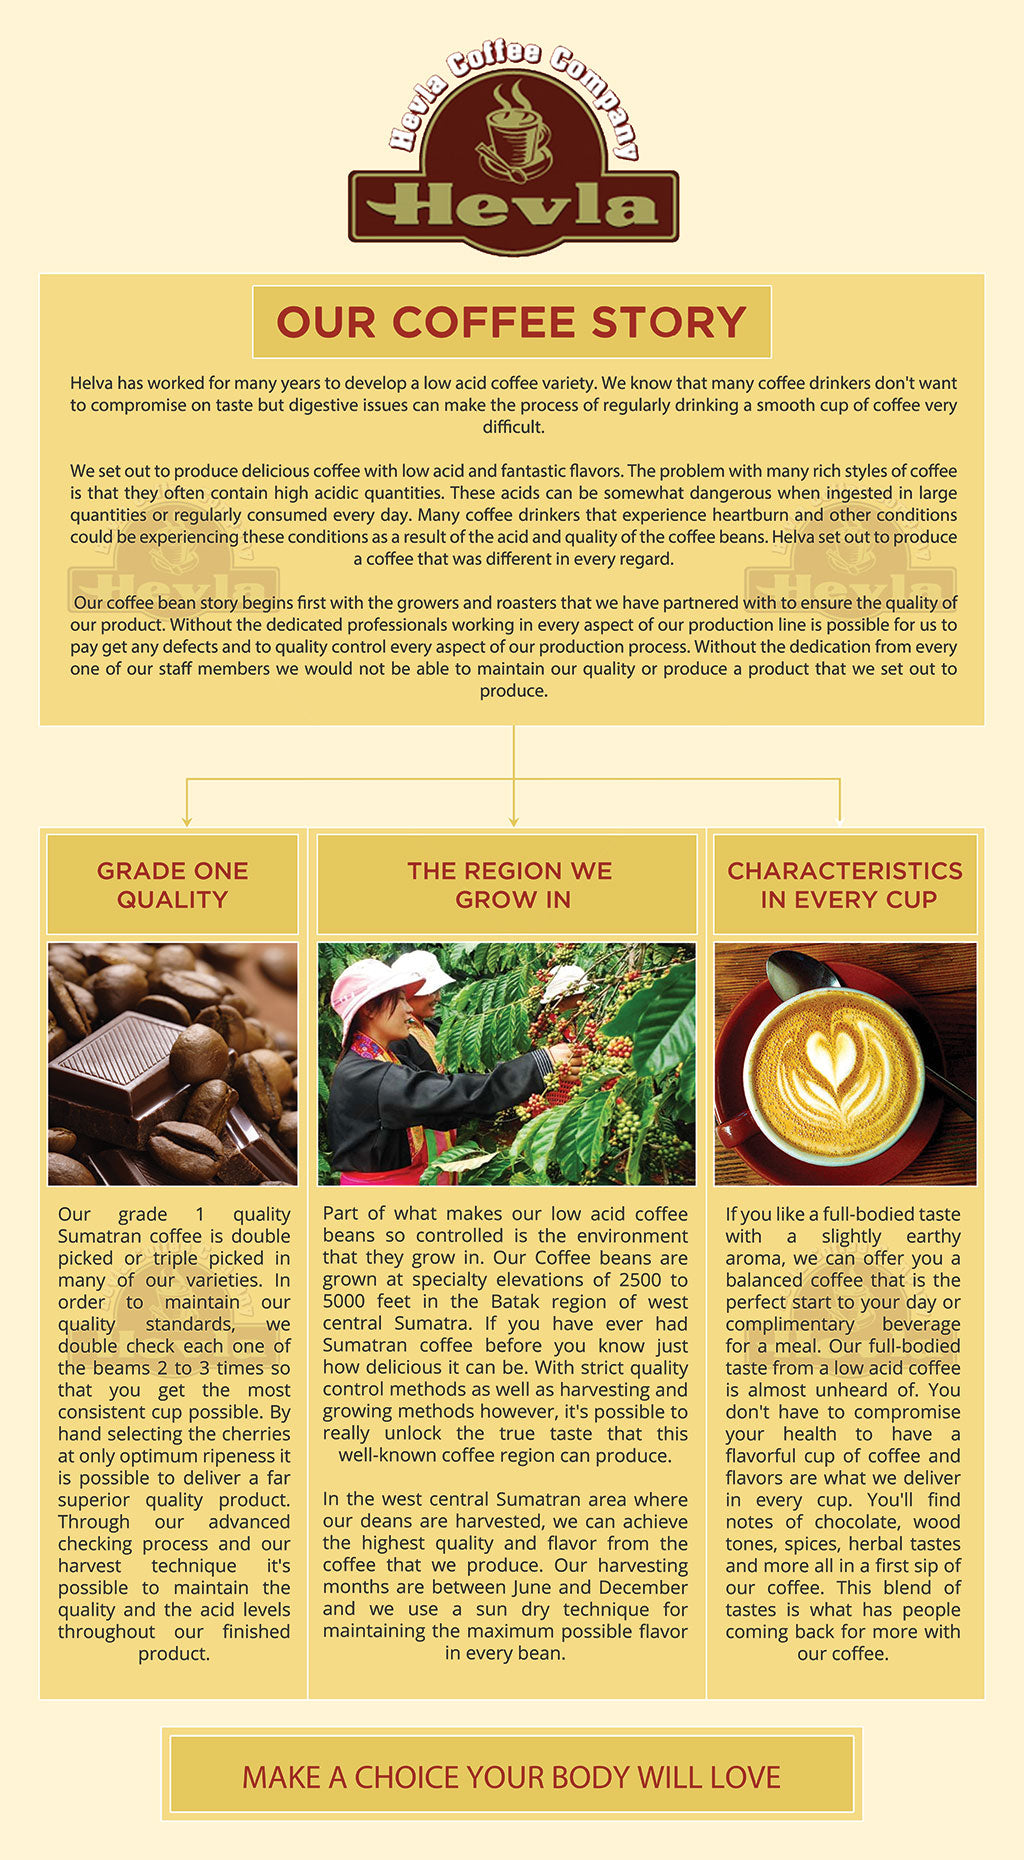 Our Coffee Story